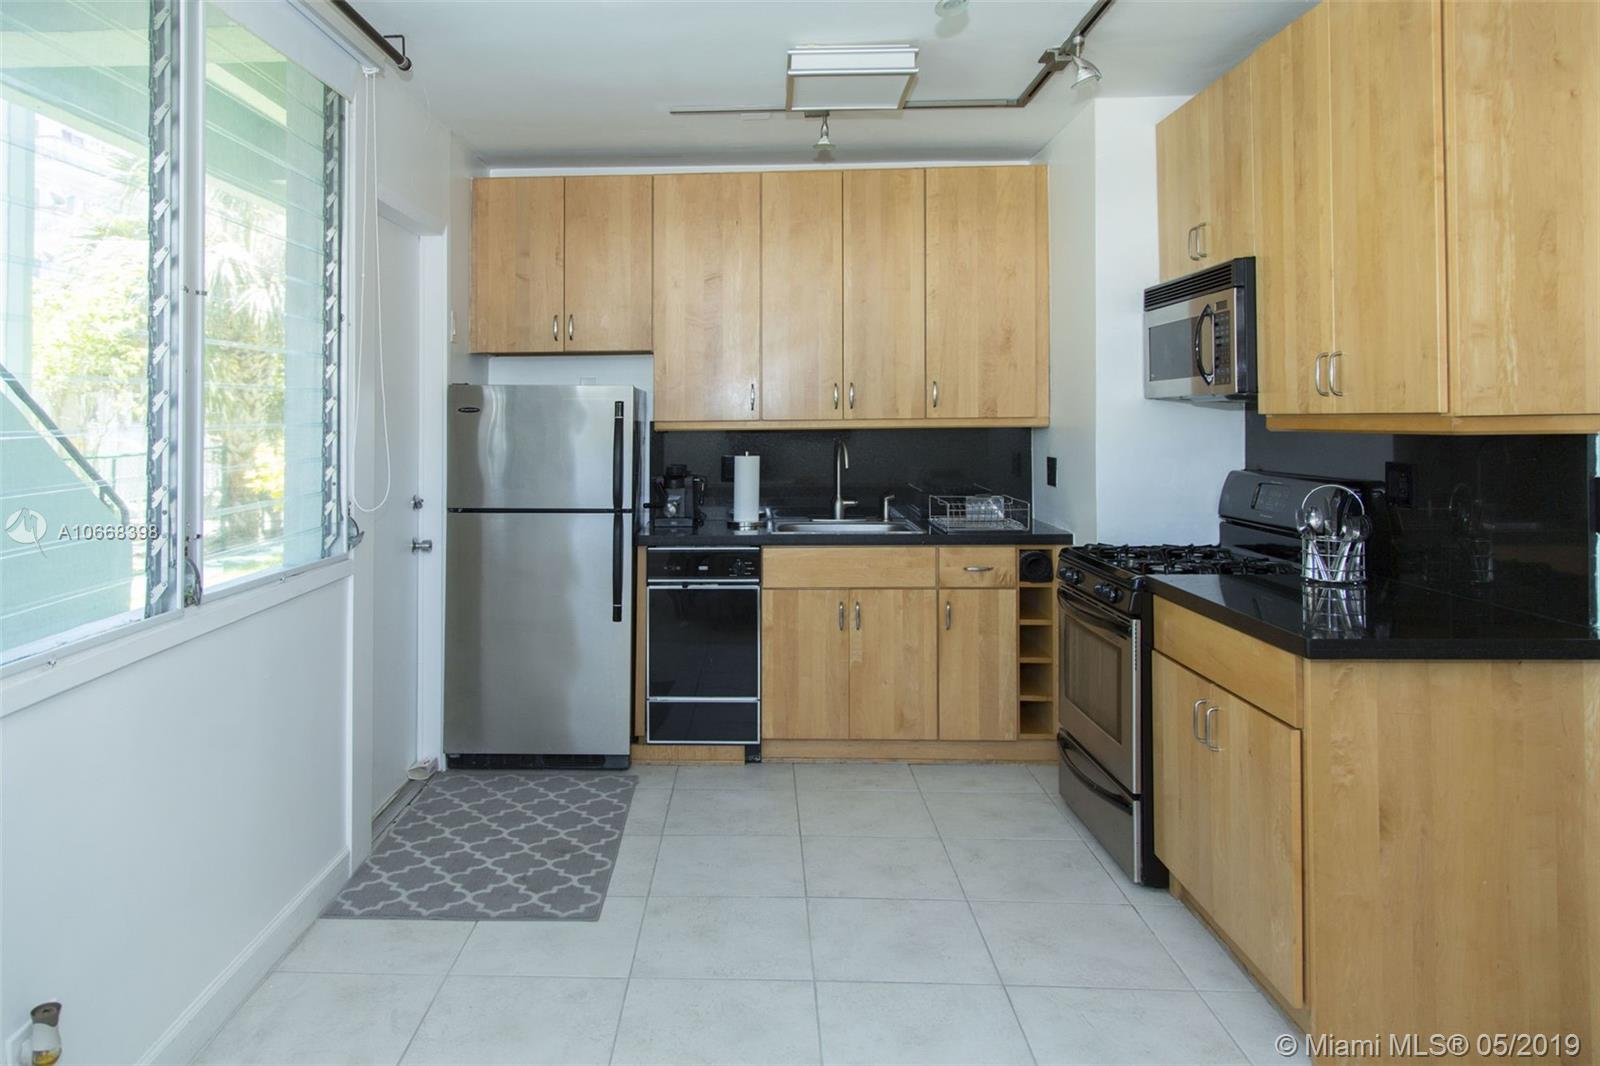 LOCATION, LOCATION,WALKING DISTANCE TO BEACH, MALL AND RESTAURANTS. MAXIMUN 2 PEOPLE PER APARTMENT,NO PETS